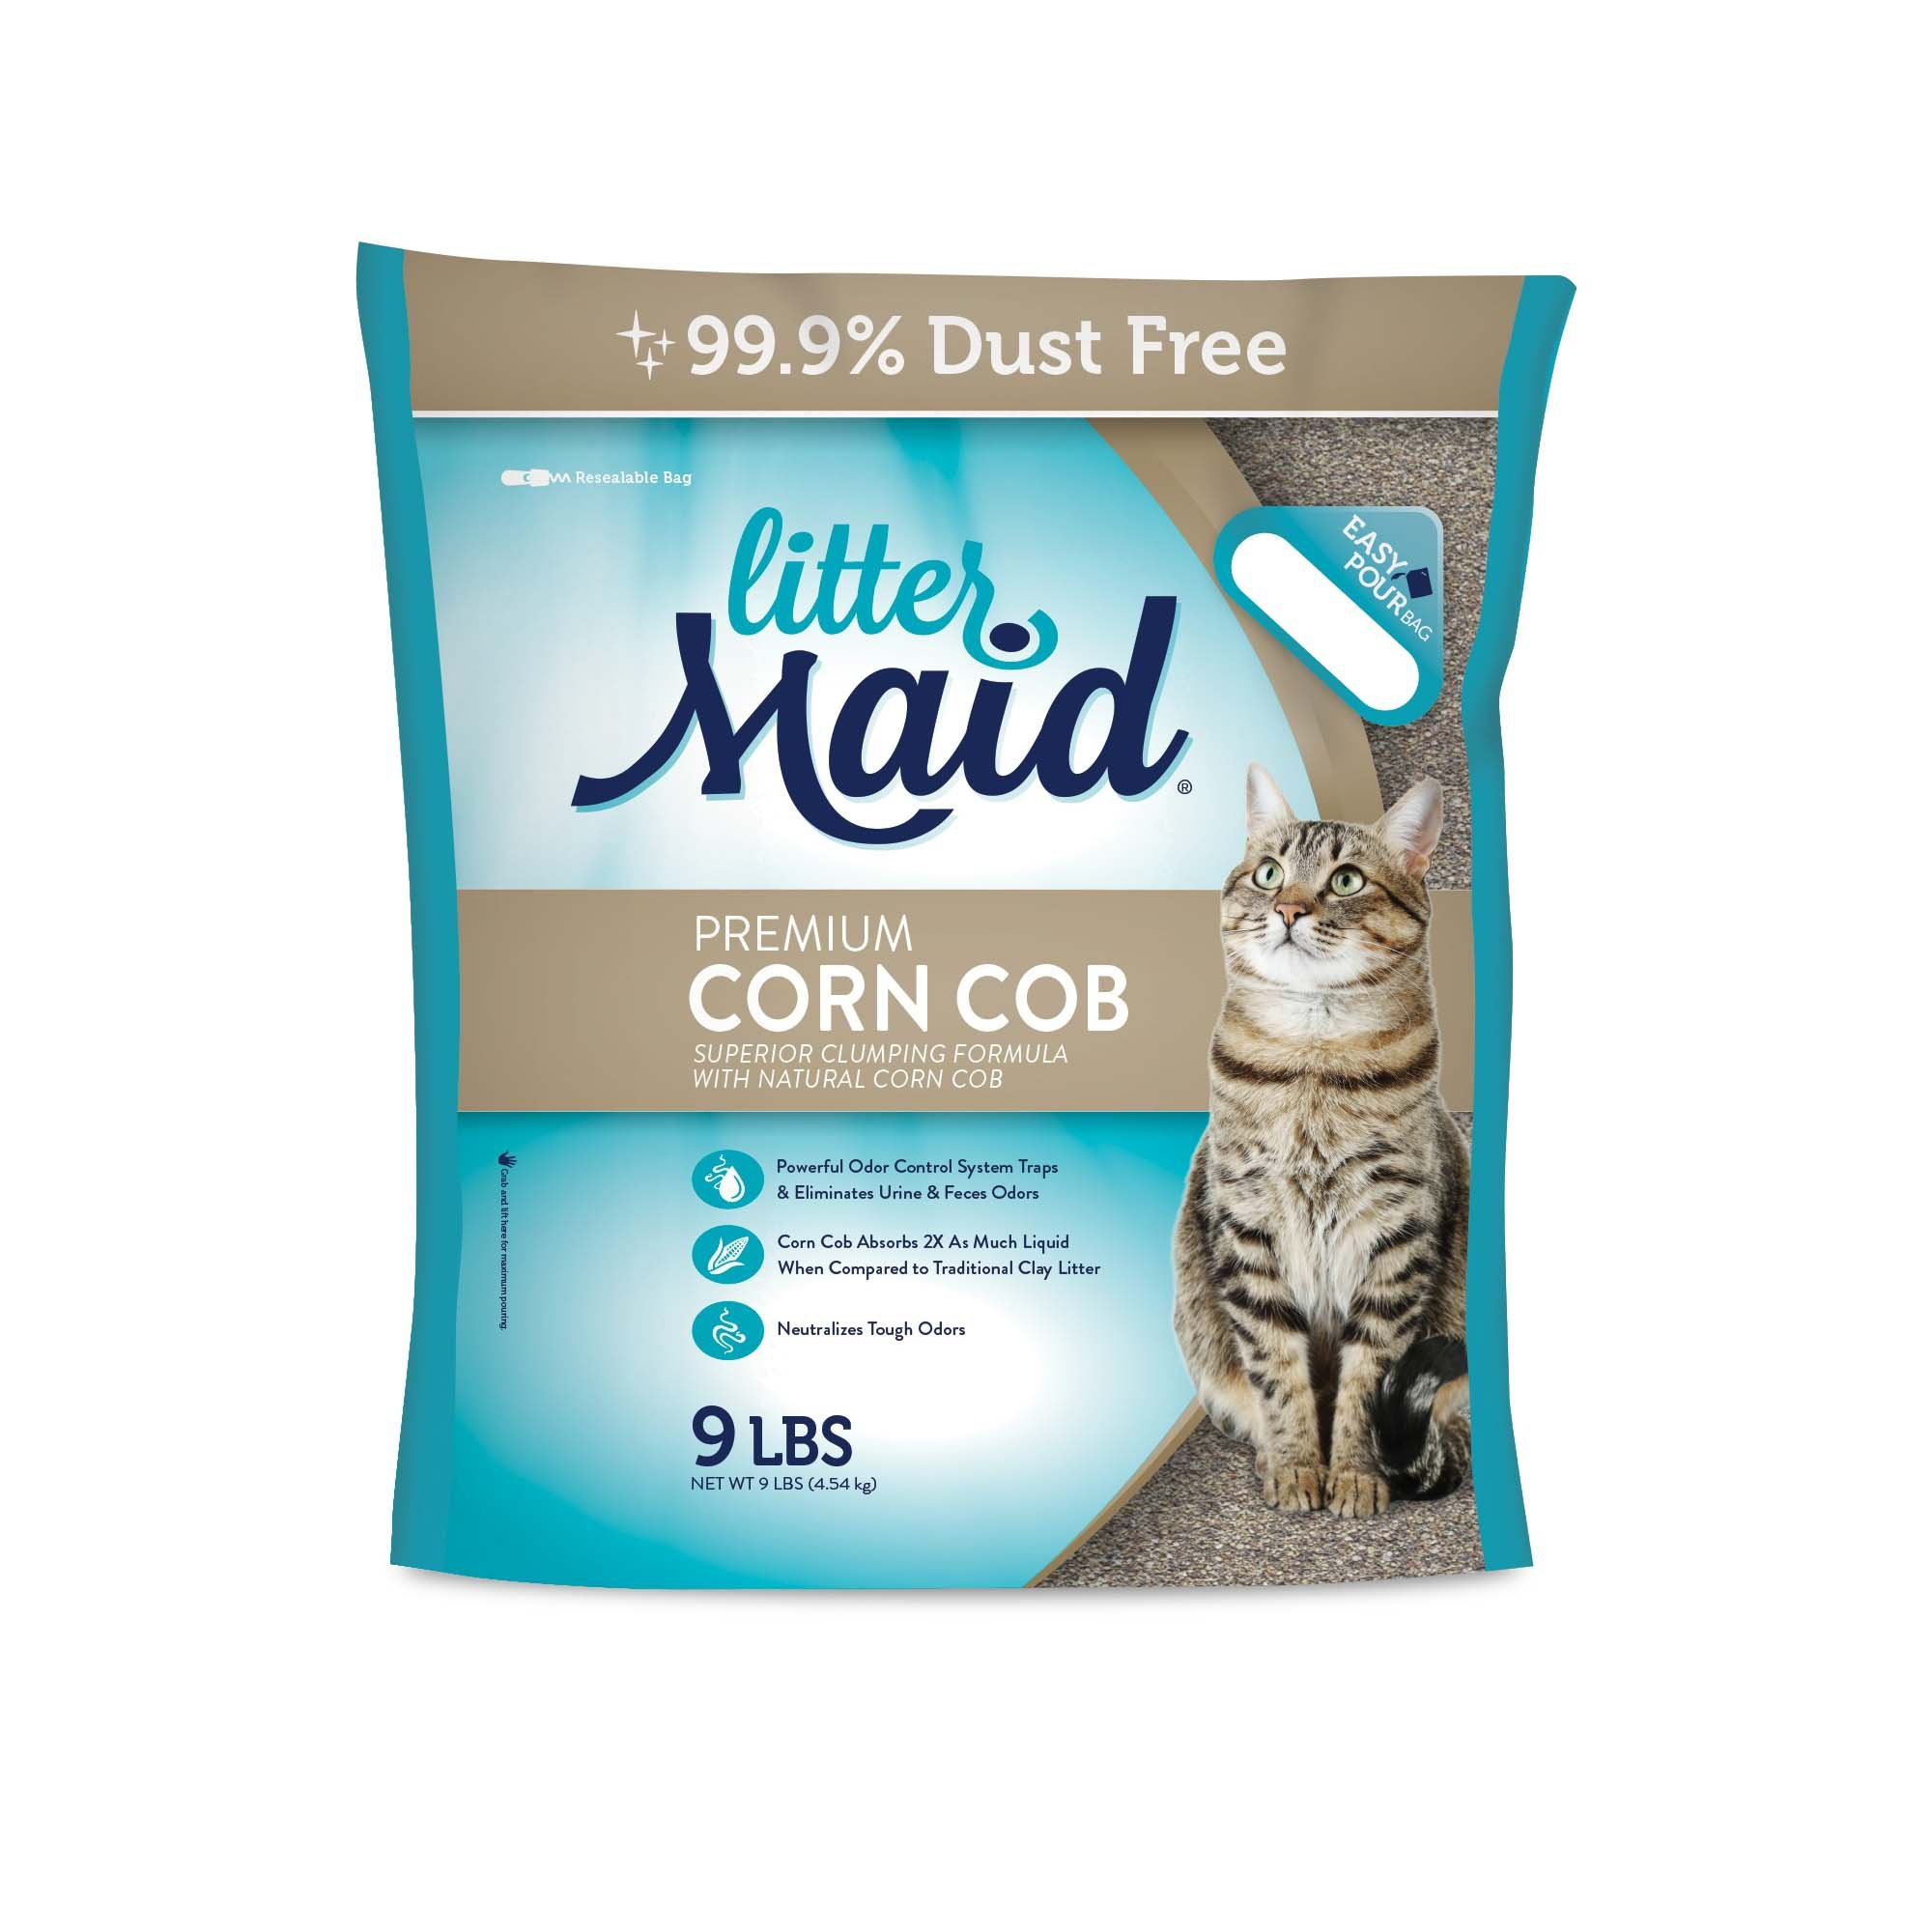 Littermaid Premium Corn Cob Litter Petco